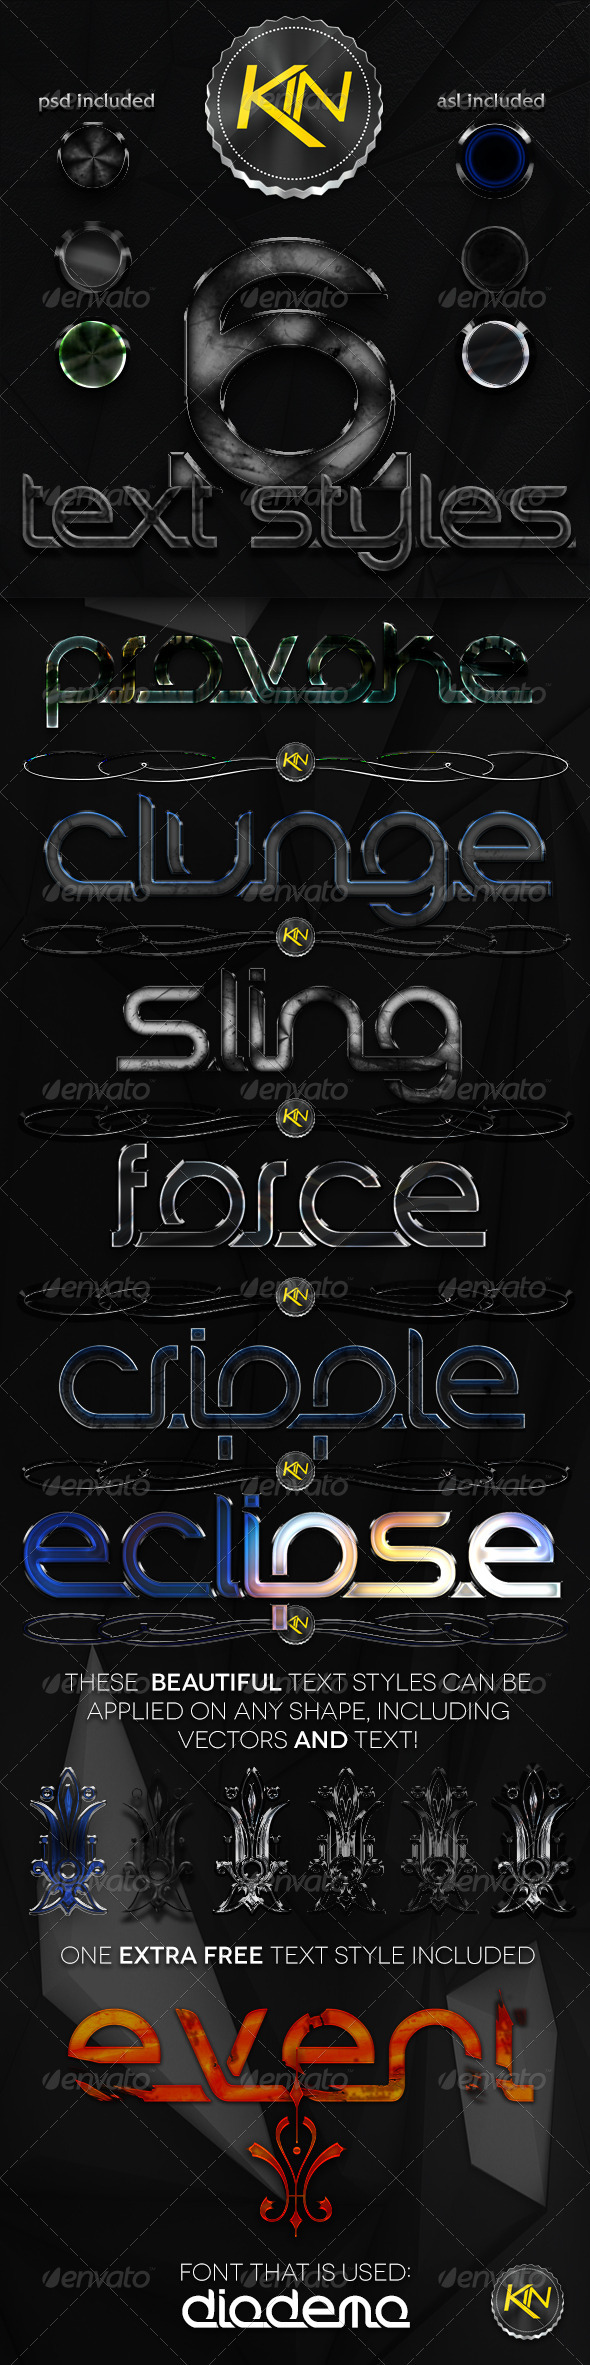 GraphicRiver 7 Amazing Text Styles 3218190